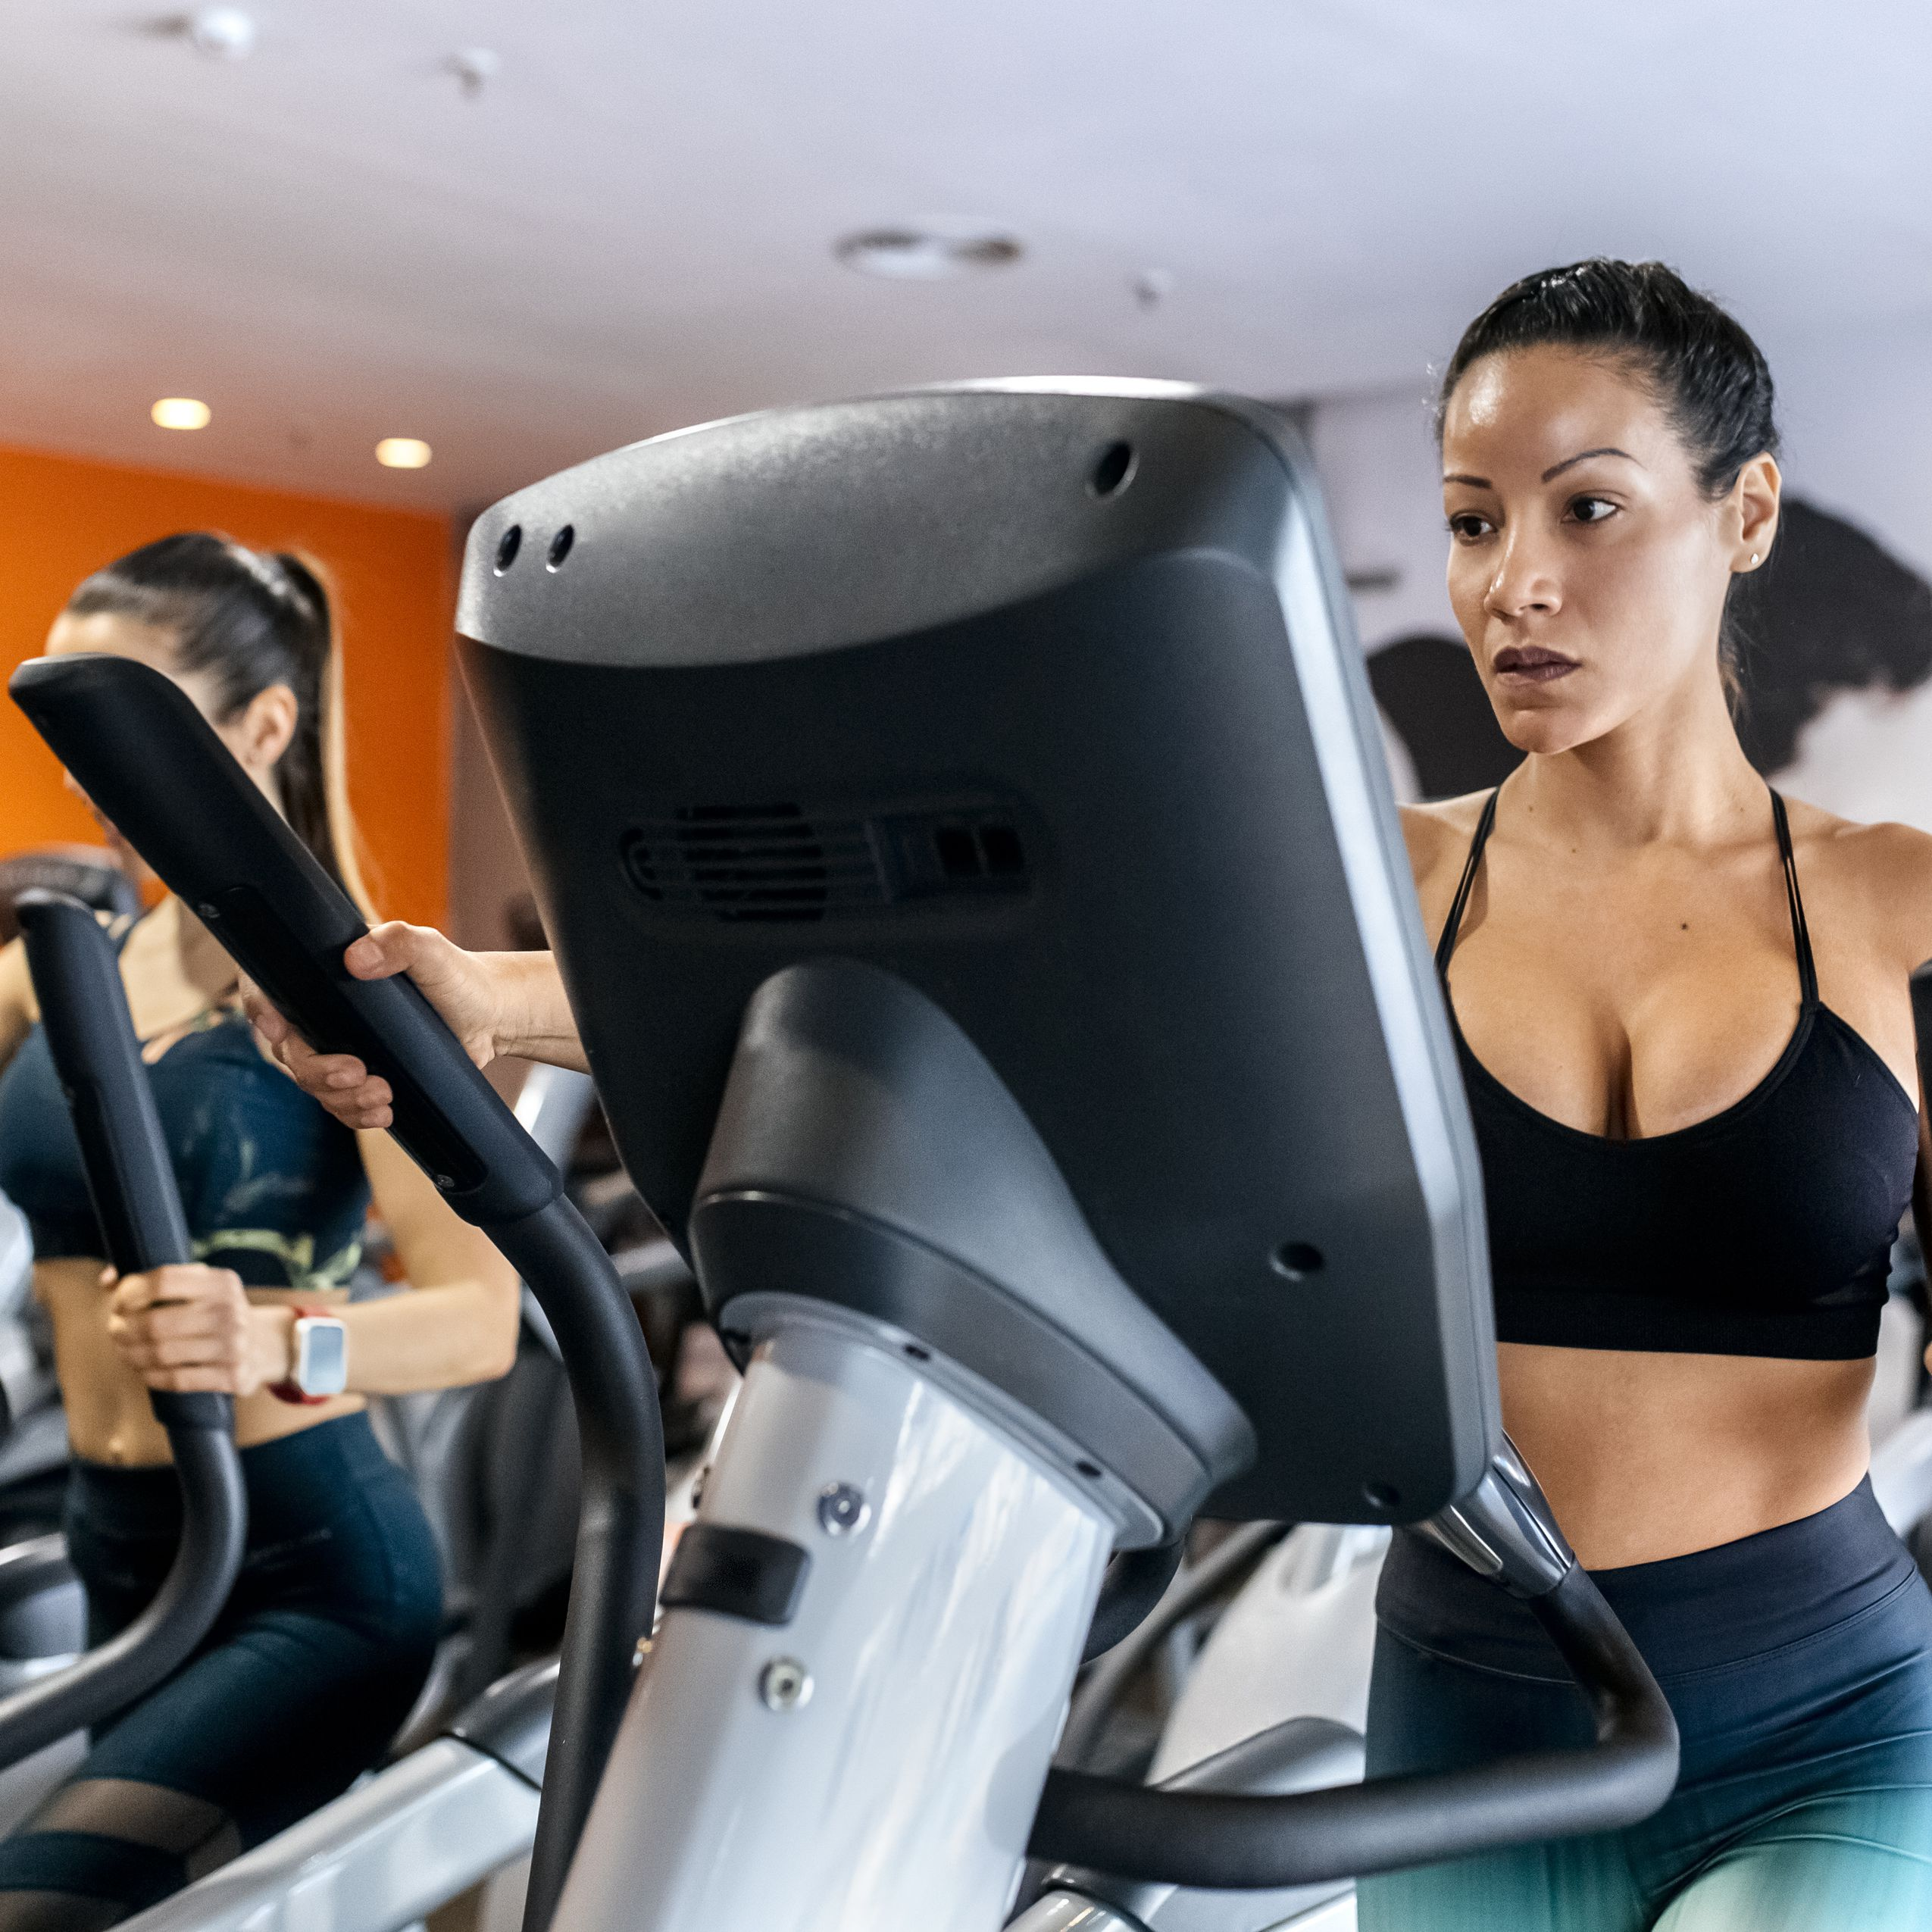 Before You Buy an Elliptical Trainer